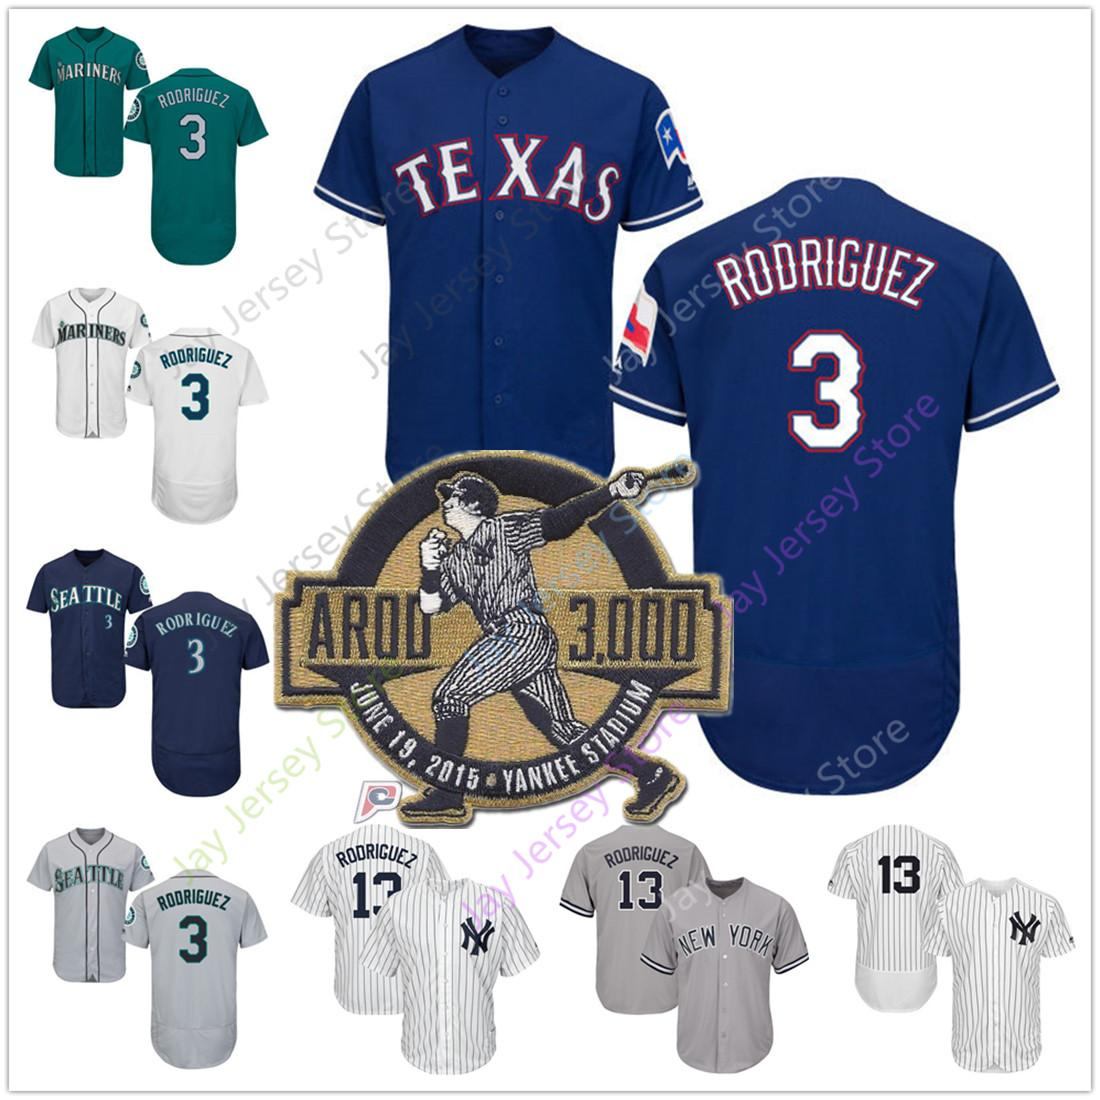 640878d8 2019 Alex Rodriguez Jersey Men Women Youth Kid 3000th Hit Patch Yankees  Mariners Rangers New York Seattle Texas Home Away Cool Base From  Davidjersey, ...